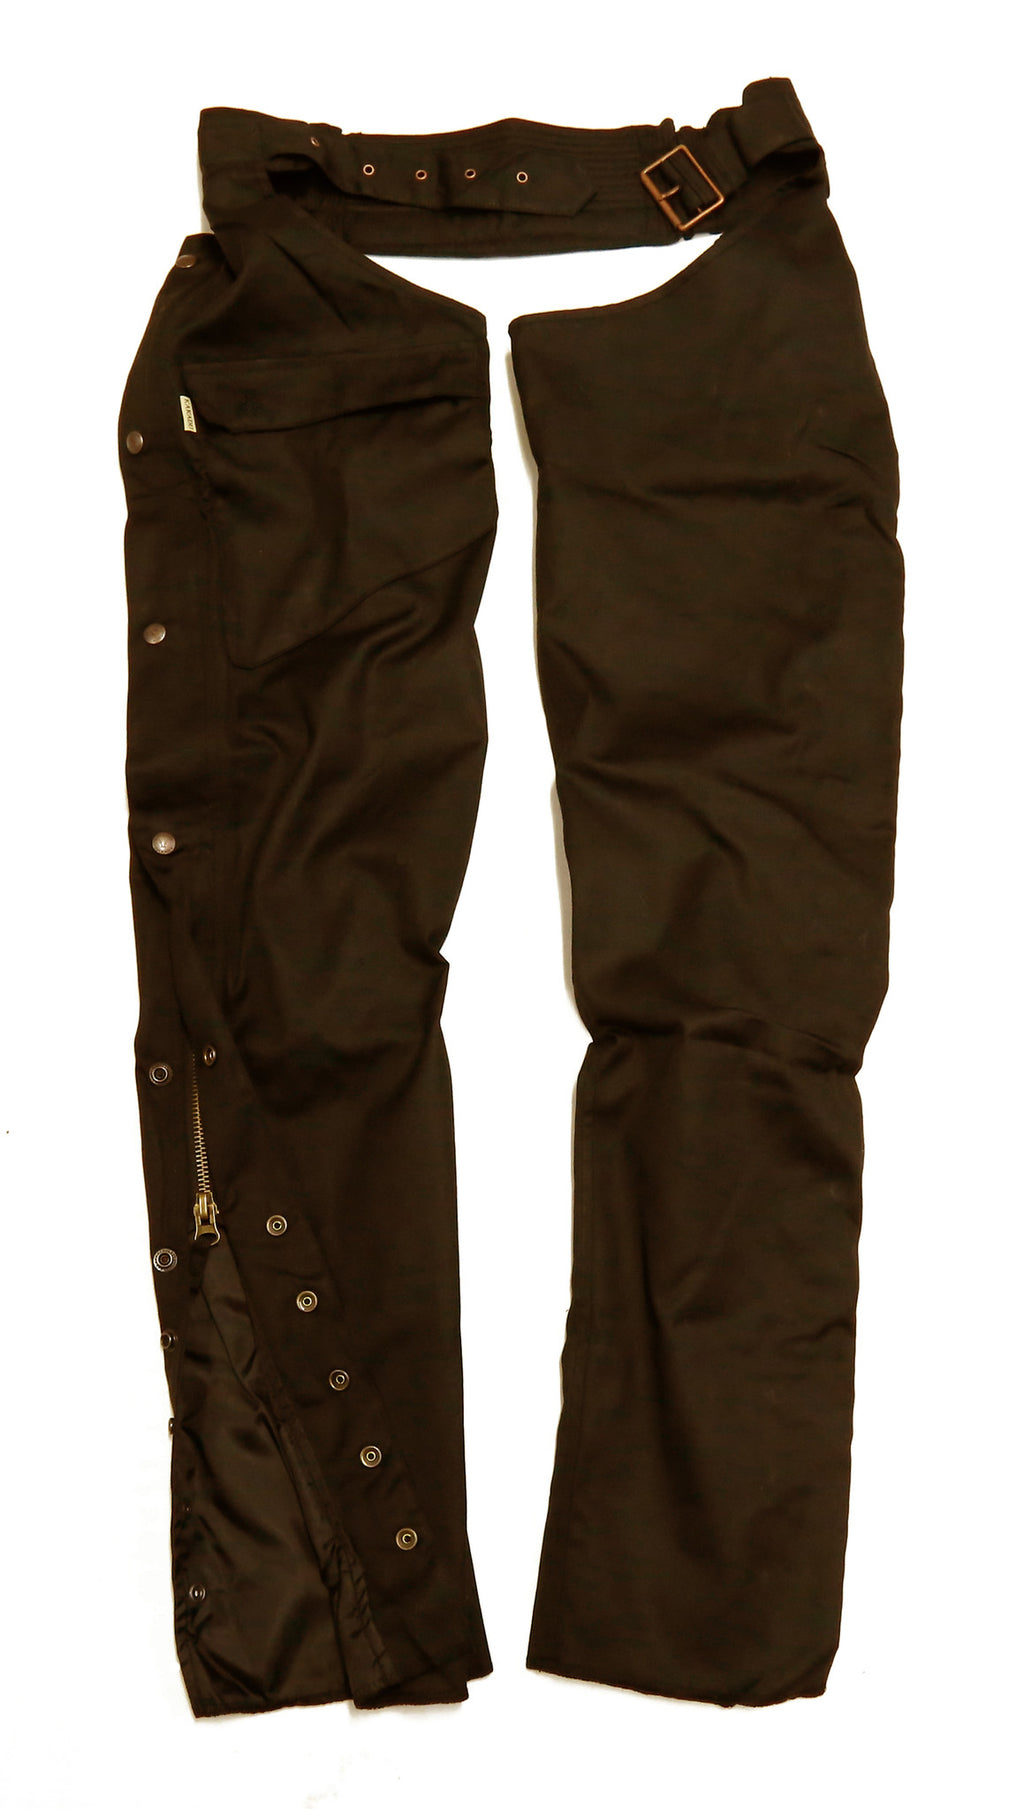 Biker | Tab | Cover chaps fan water-repellent and robust in brown - OUT OF AUSTRALIA | Kakadu Traders Australia